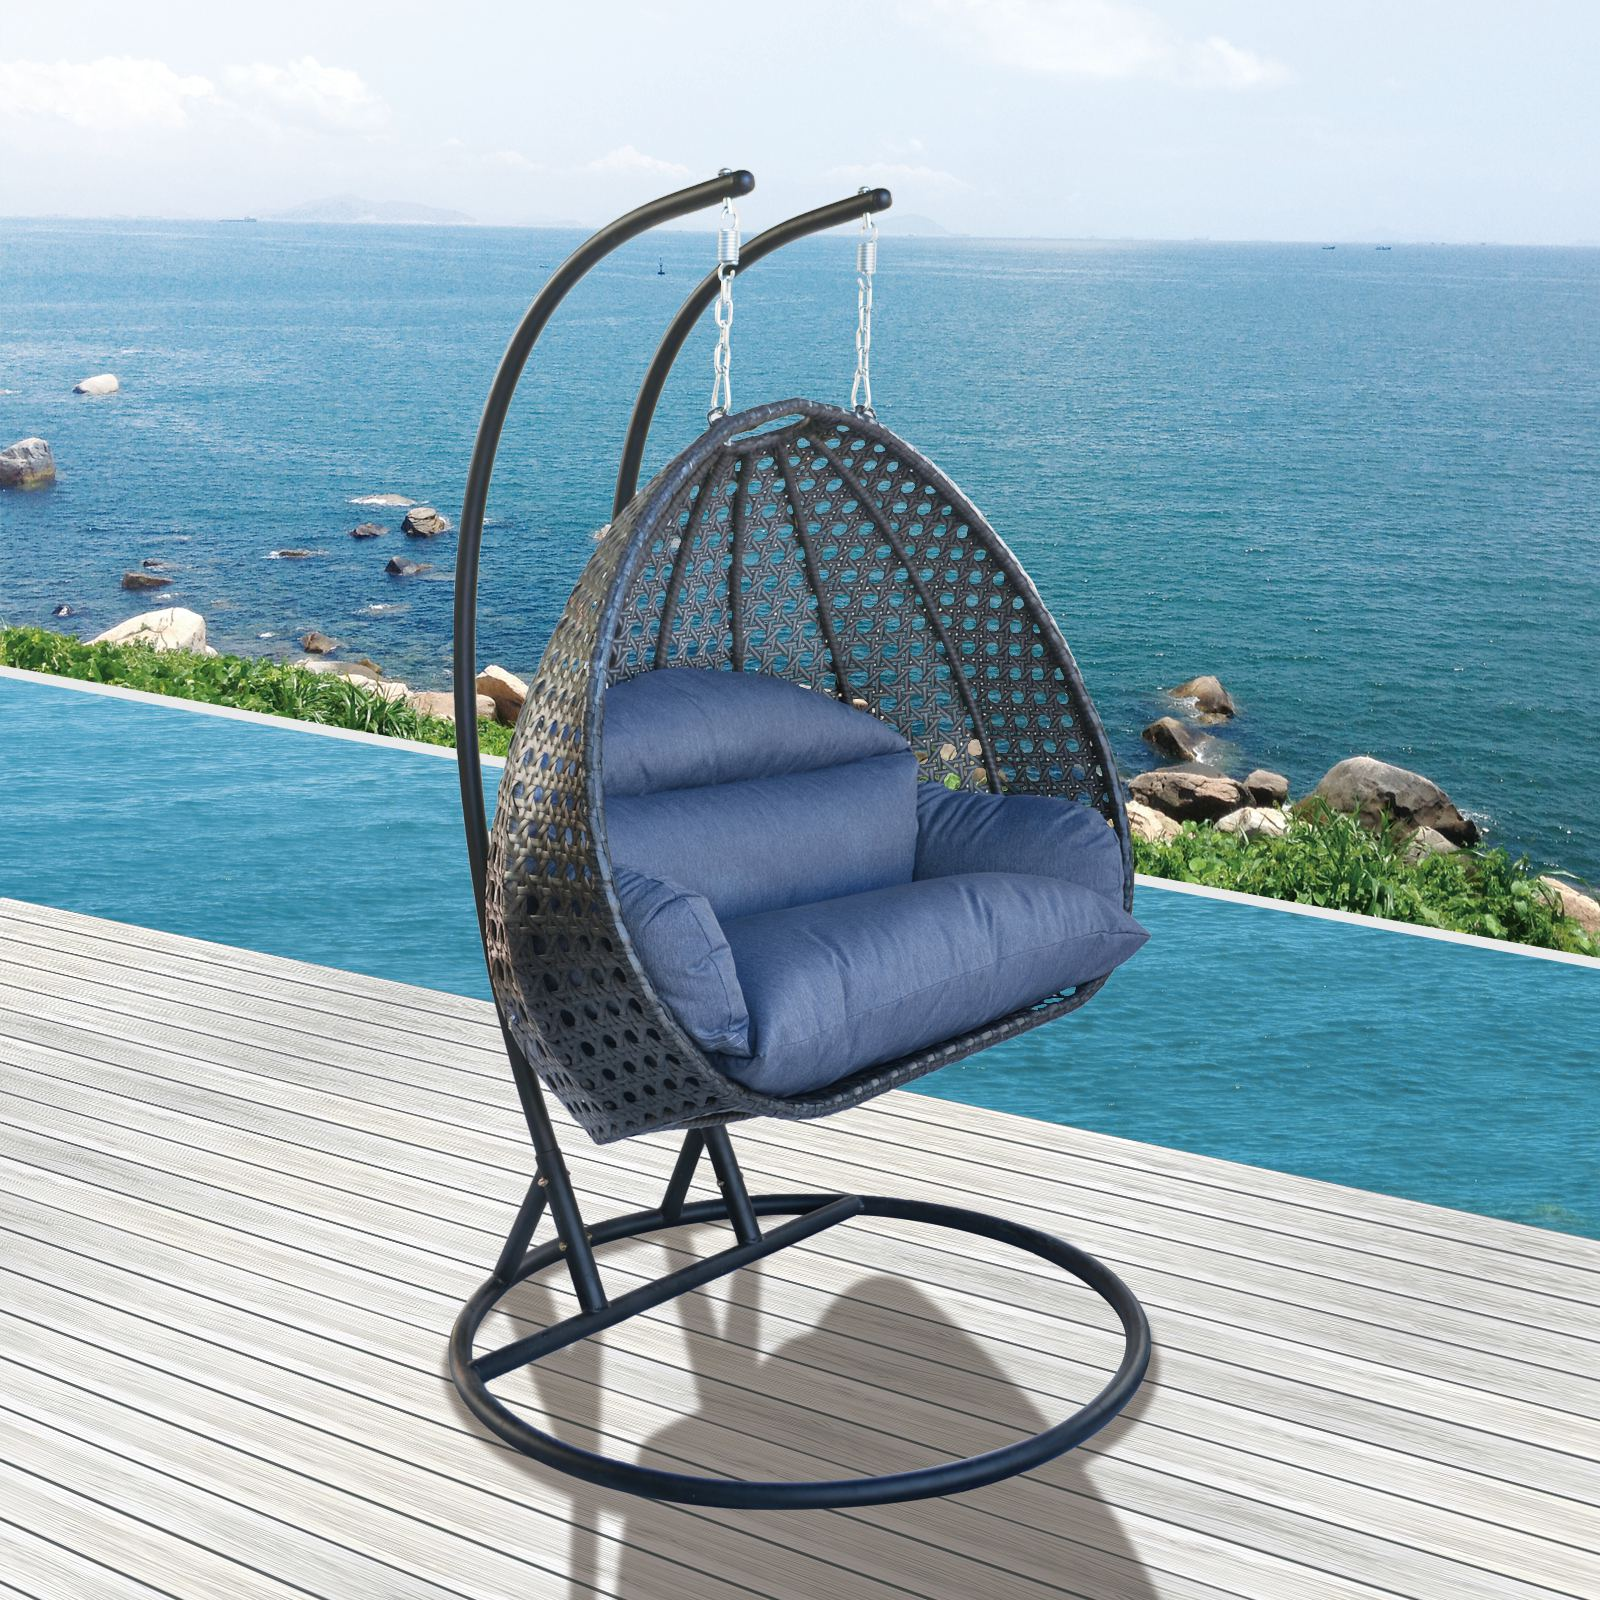 Heavy Duty 2 Person Wicker Swing Chair Hanging Outdoor